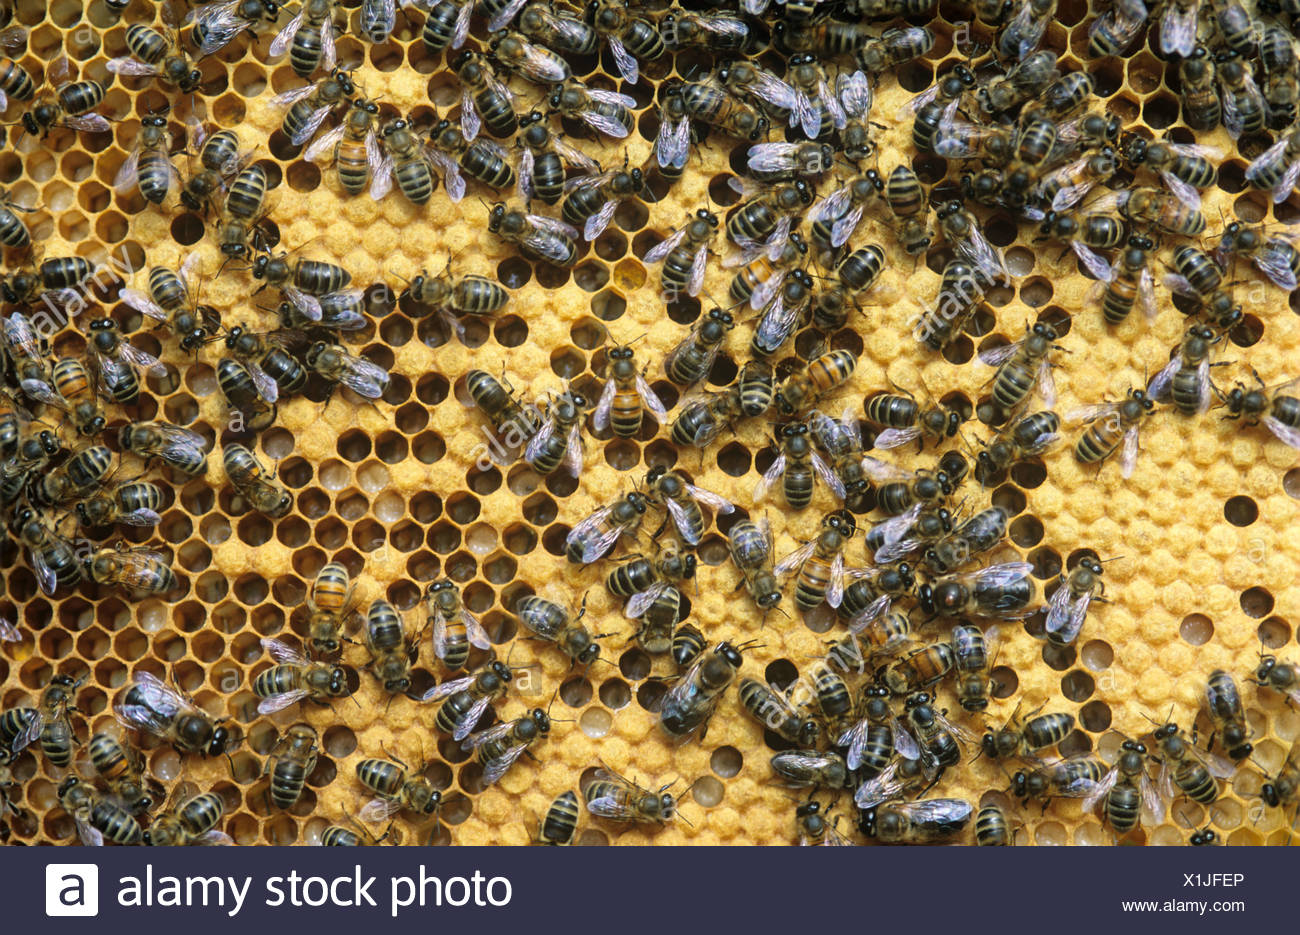 Worker honey bees Apis mellifera on brood cells in hive - Stock Image